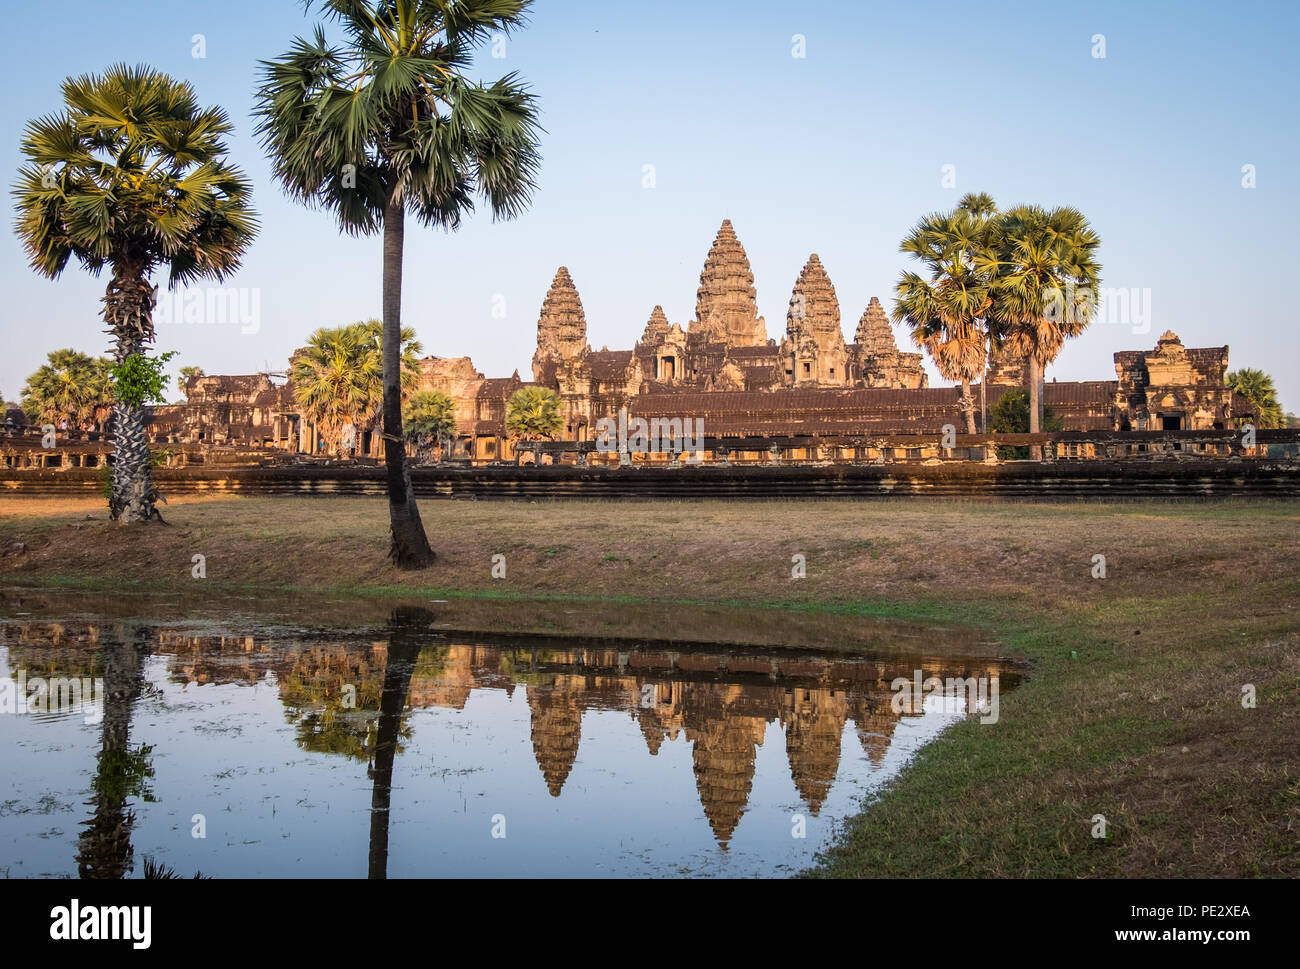 An evening sunset view of Angkor Wat Temple in Cambodia - Stock Image